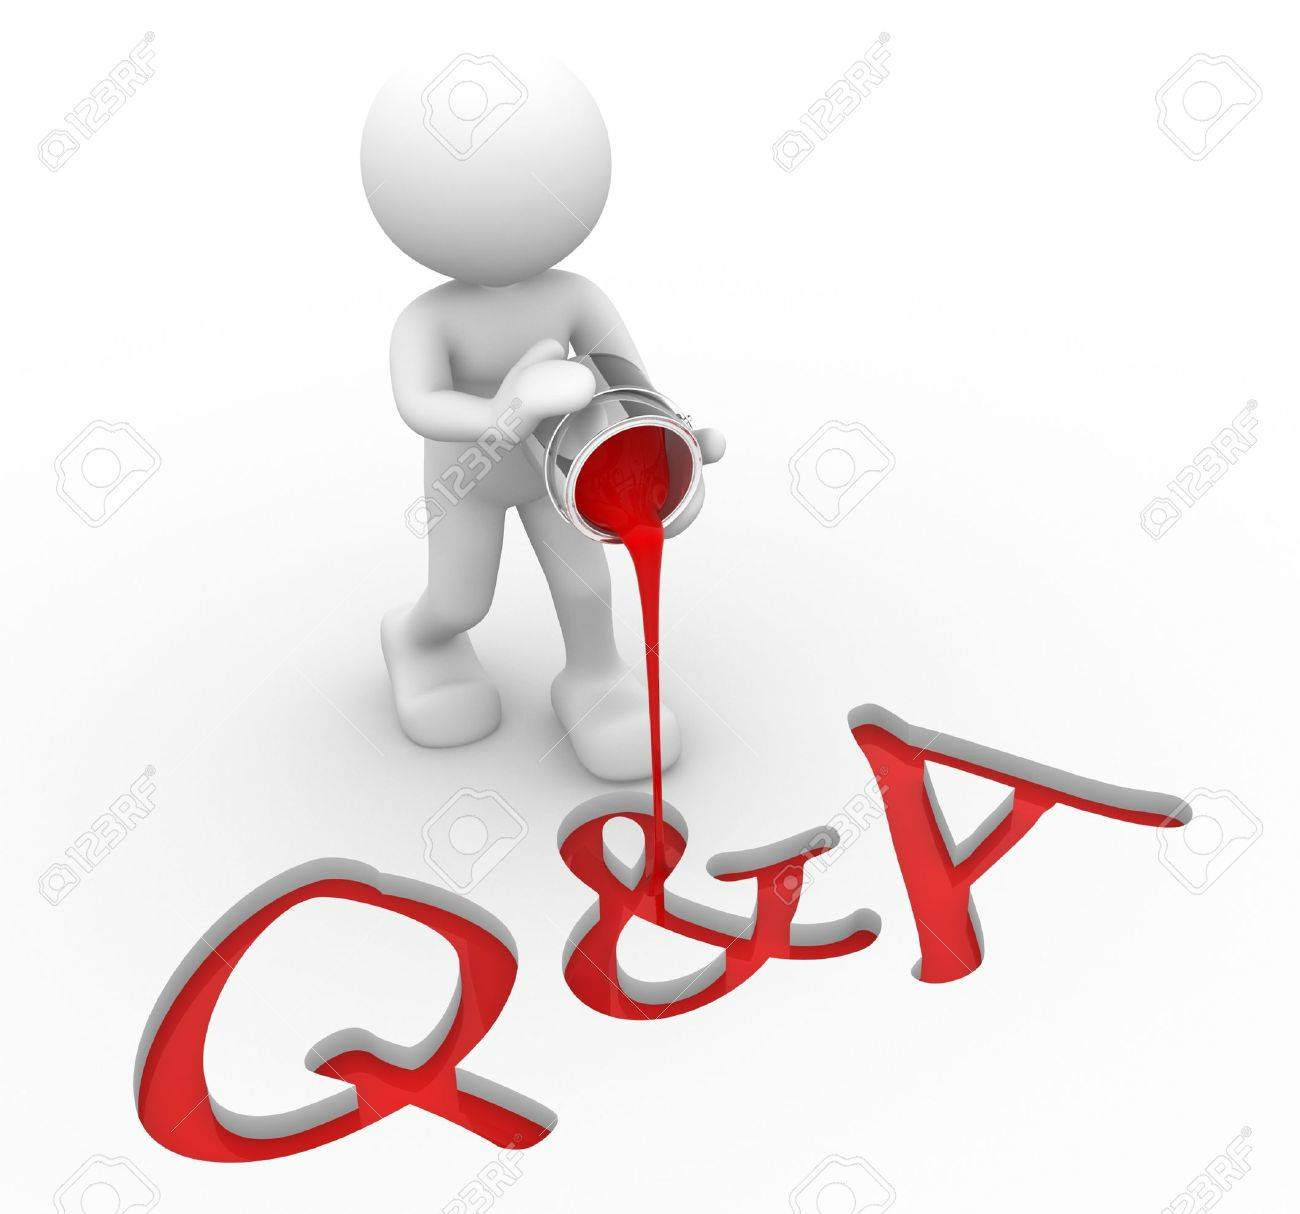 3d people - man , person with a bucket of paint. Q&A ( Questions and Answers) Stock Photo - 16966495